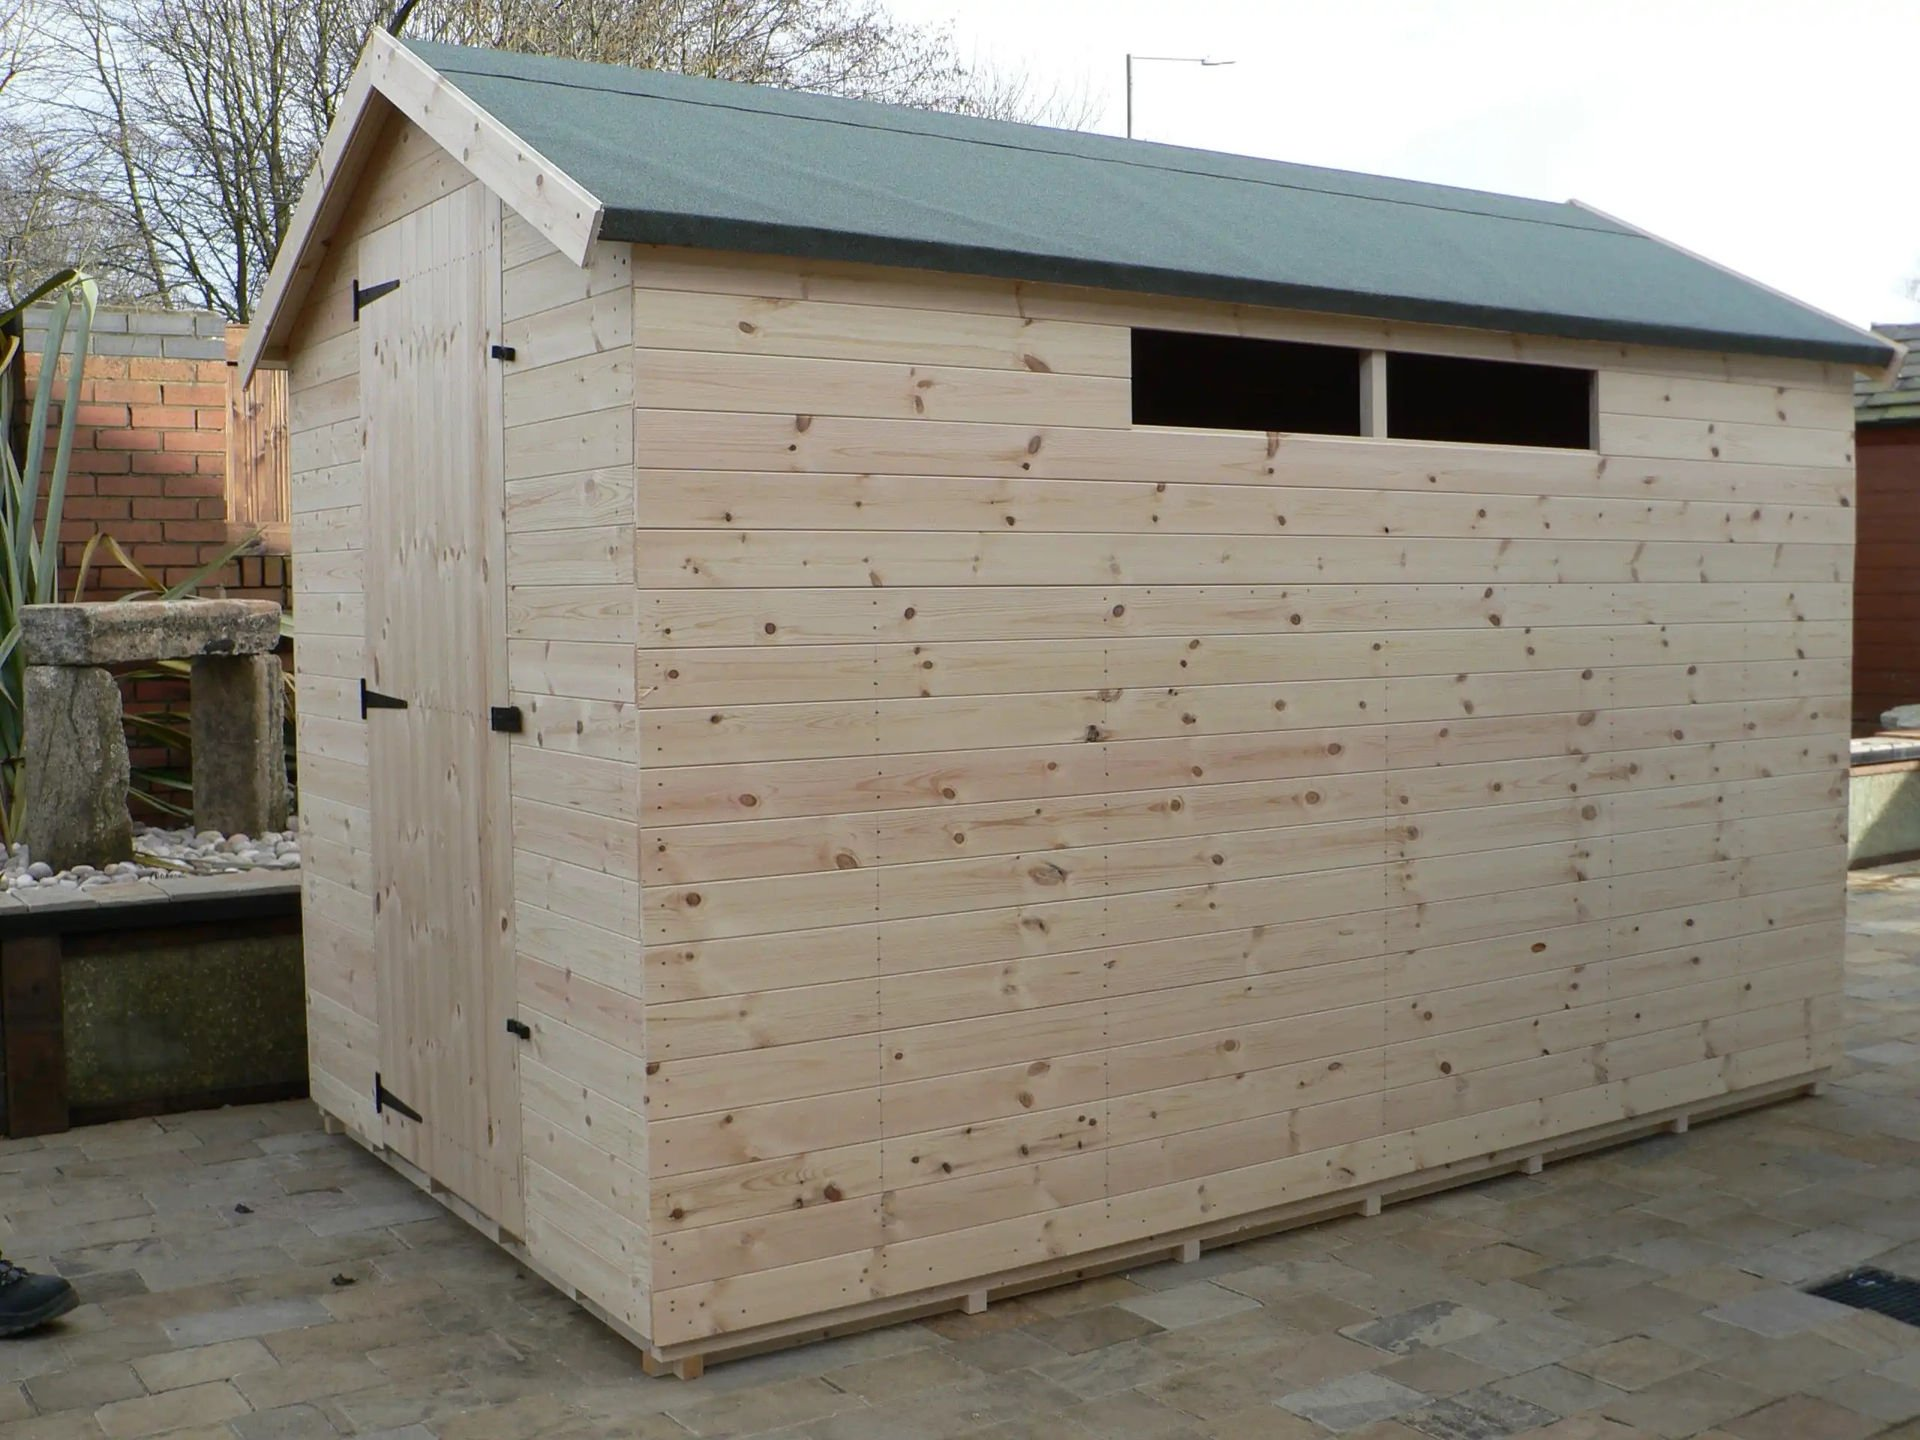 Sheds Manchester - 10' x 6' Apex Shed With Security Windows And The Door Hinged On The Left